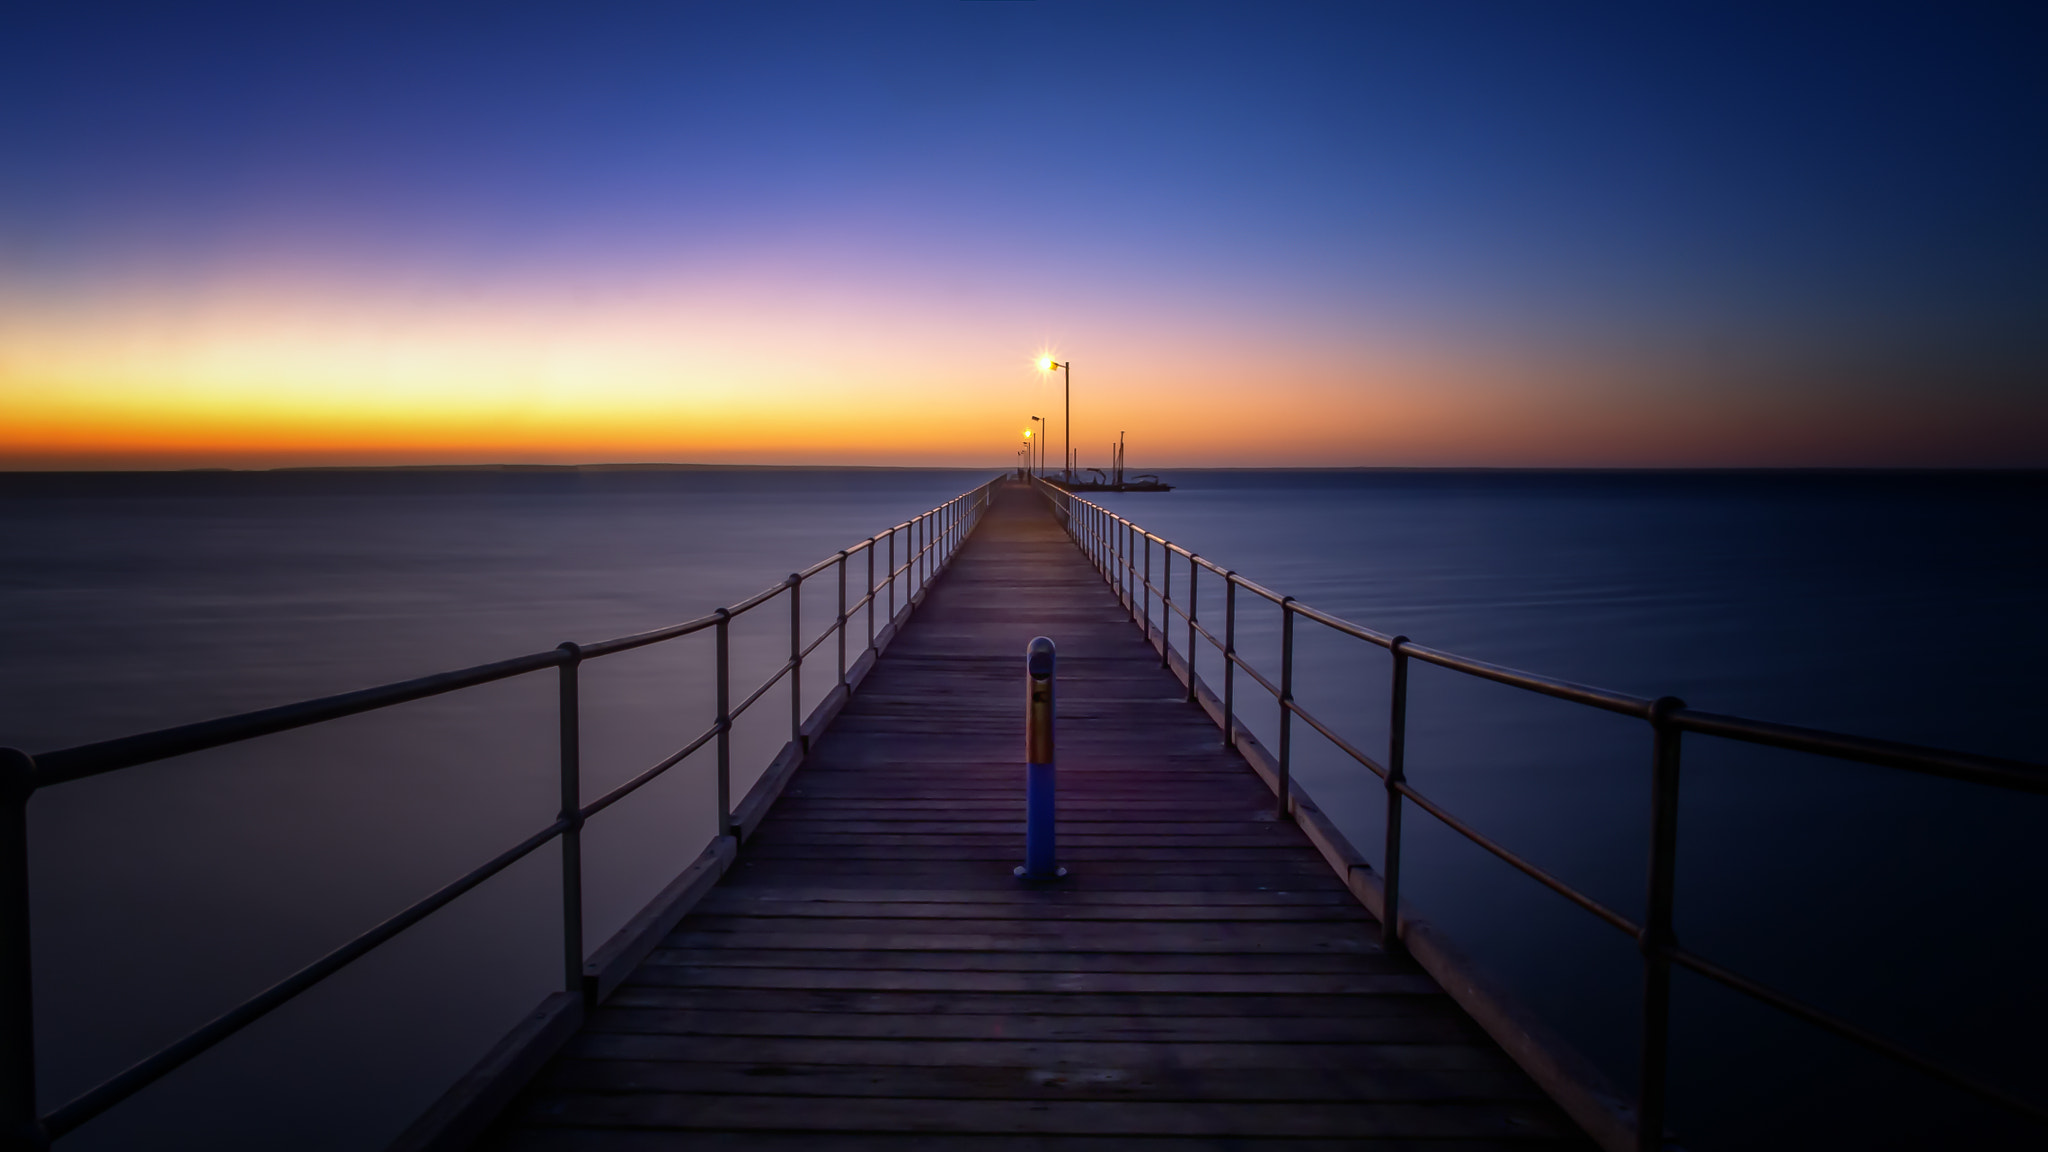 Photograph Along Ceduna Jetty by PaulEmmingsPhotography  on 500px